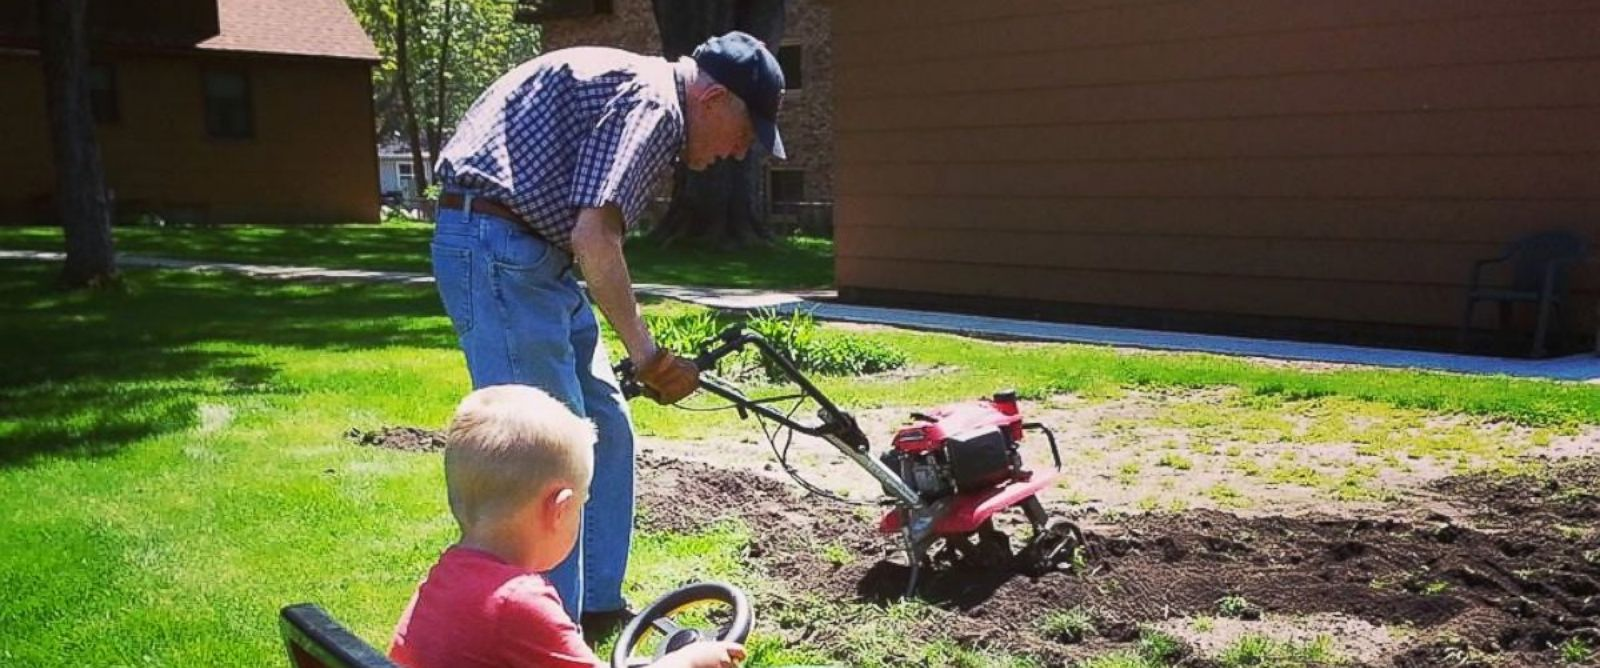 PHOTO: Erling, left, and Emmett tilling the garden together.